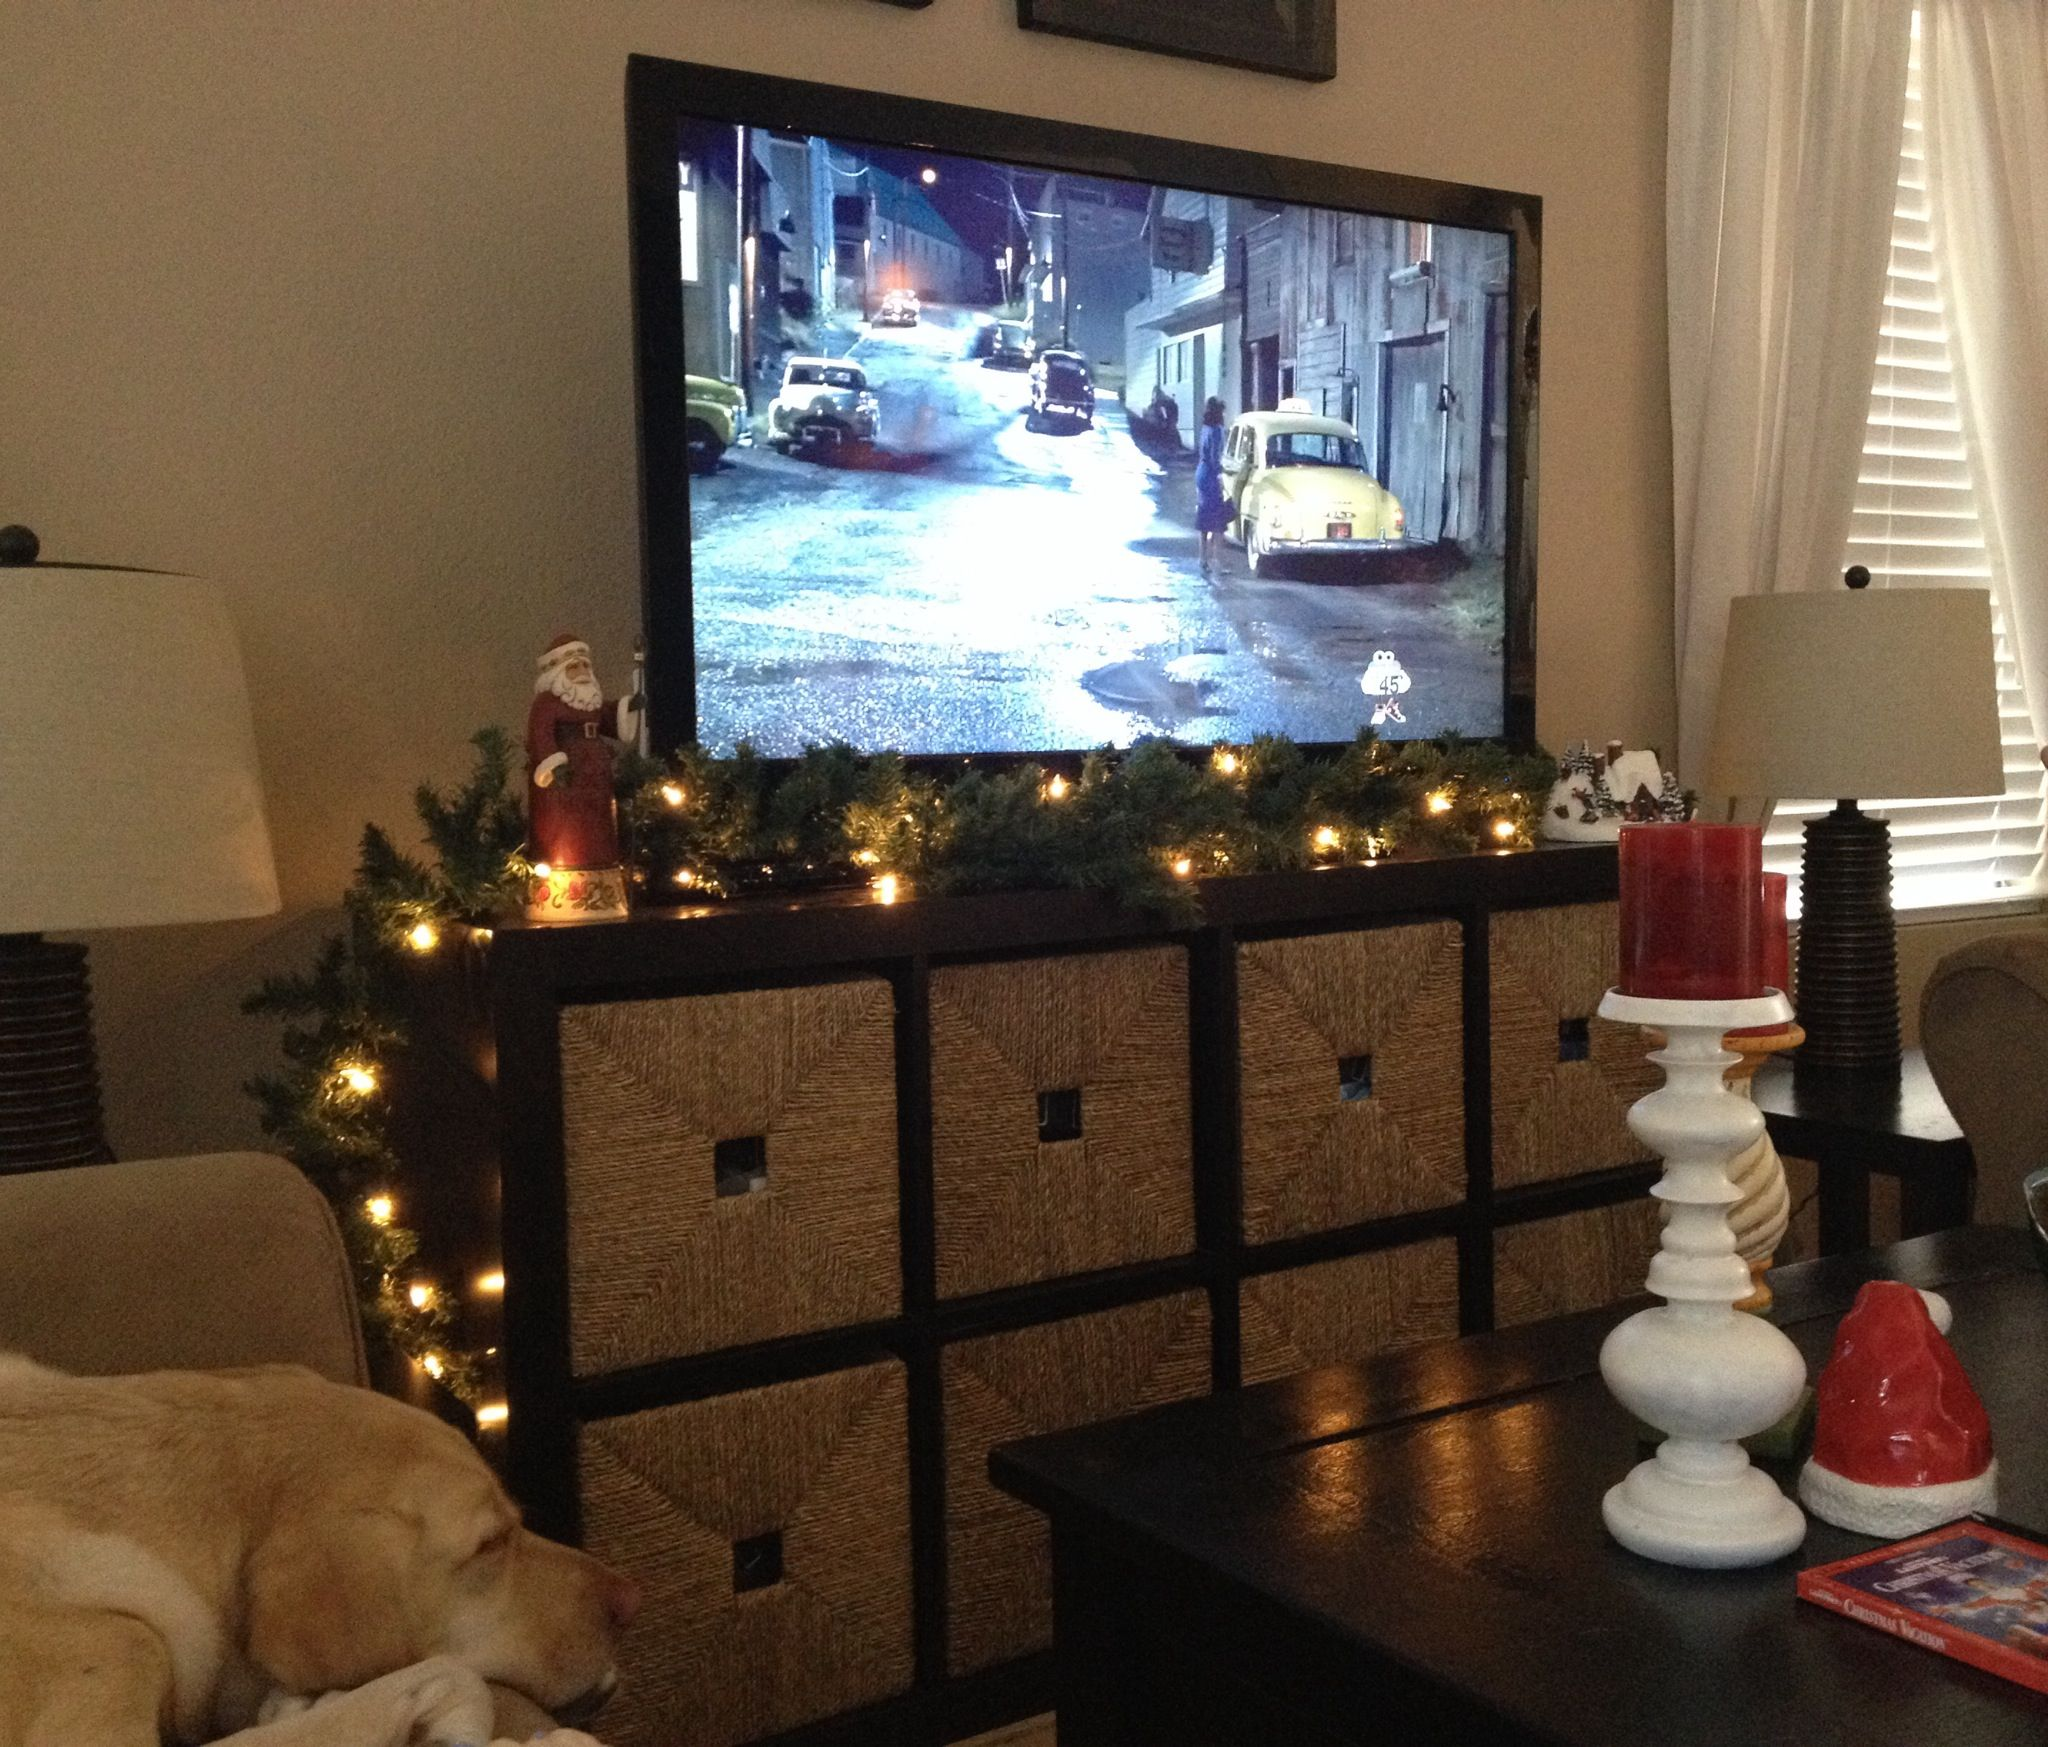 Tv Stand Decor Ideas Don 39t Have A Fireplace To Decorate With Garland I Used